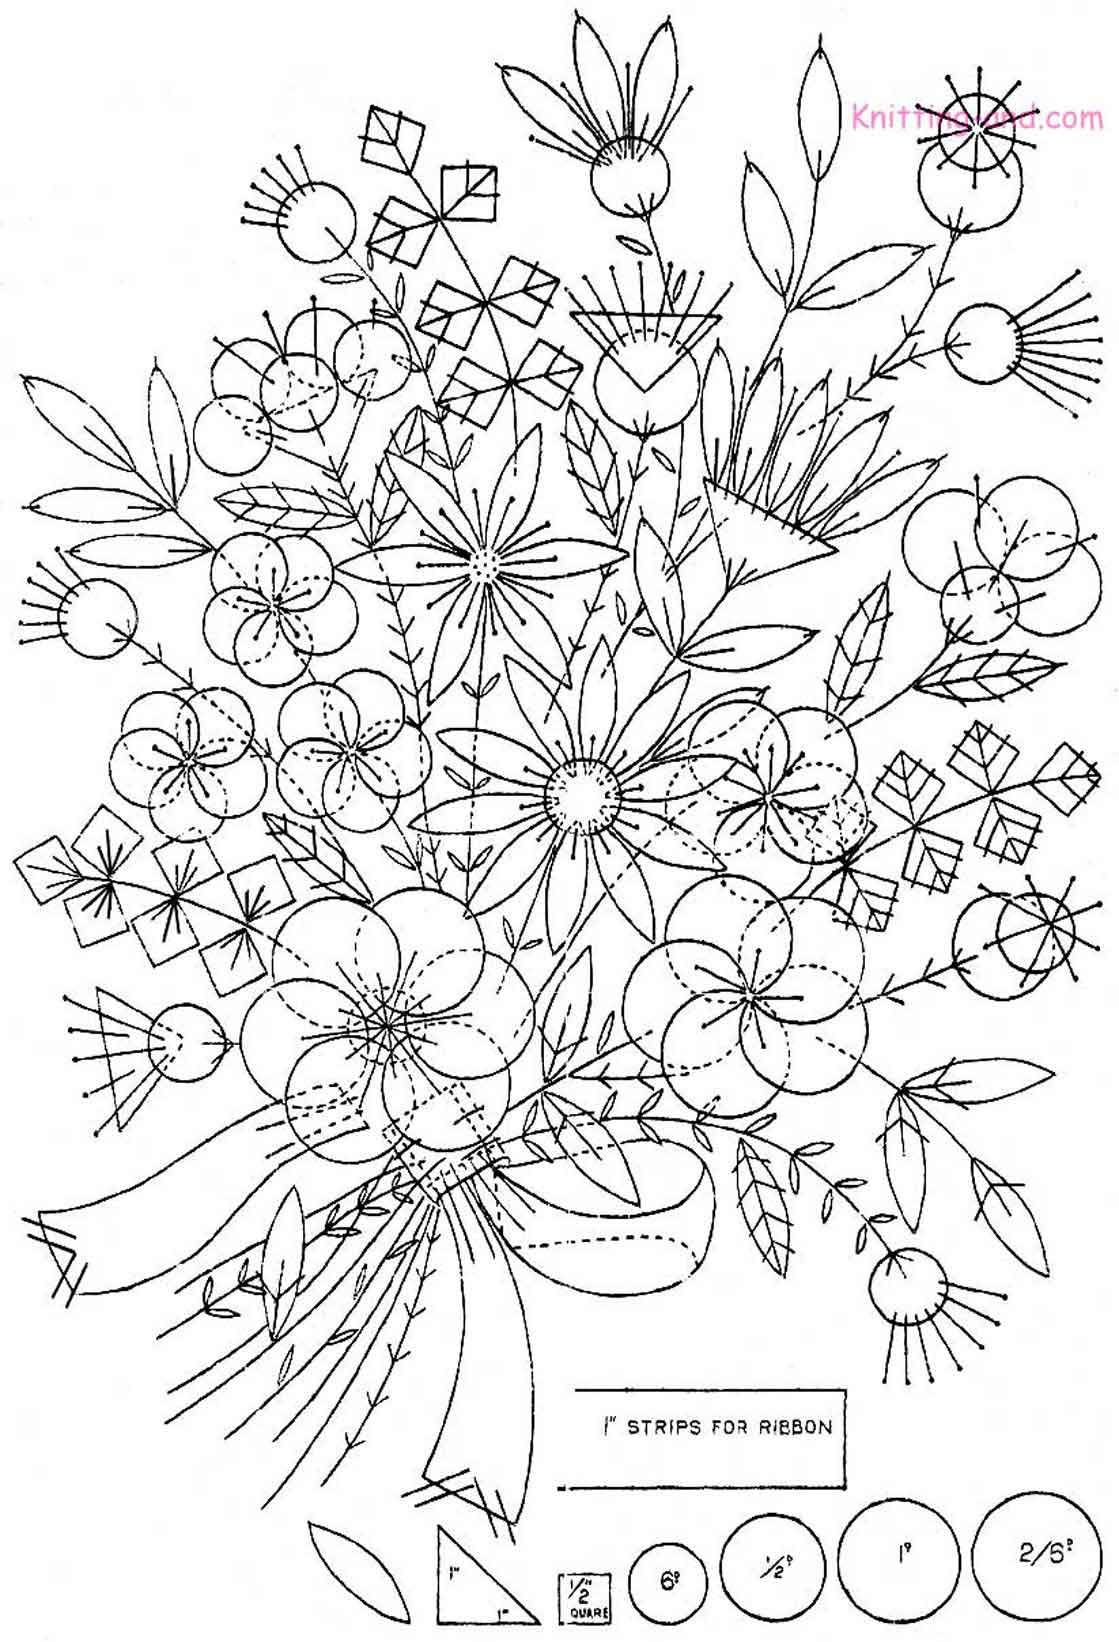 Free Hand Embroidery Pattern Free Printable Hand Embroidery Designs Free Embroidery Pattern